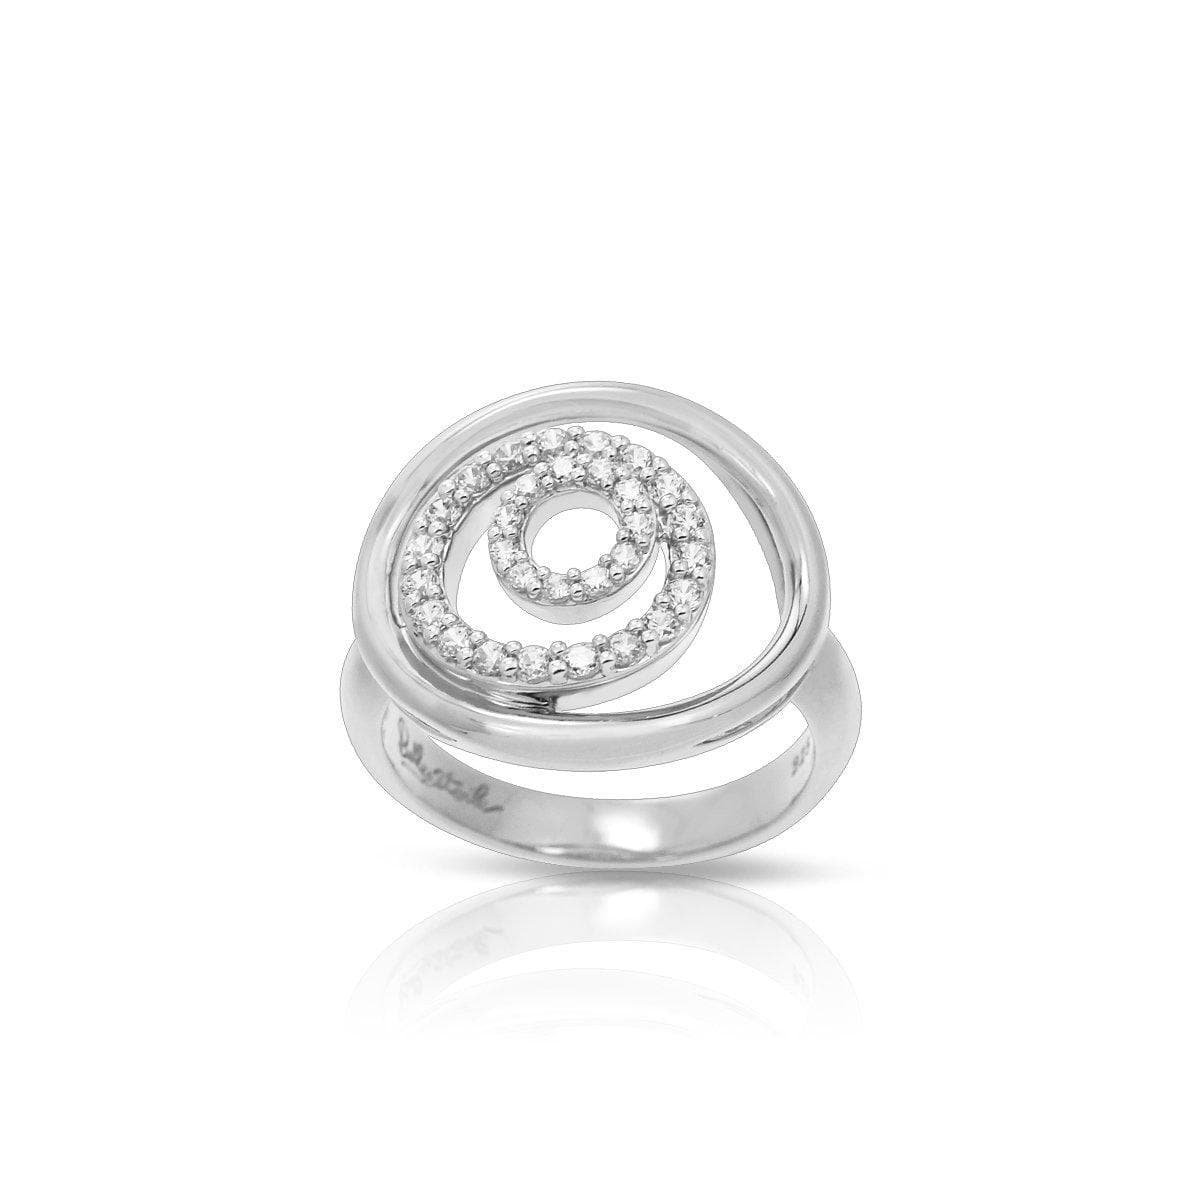 Concentra White Ring-Belle Etoile-Renee Taylor Gallery